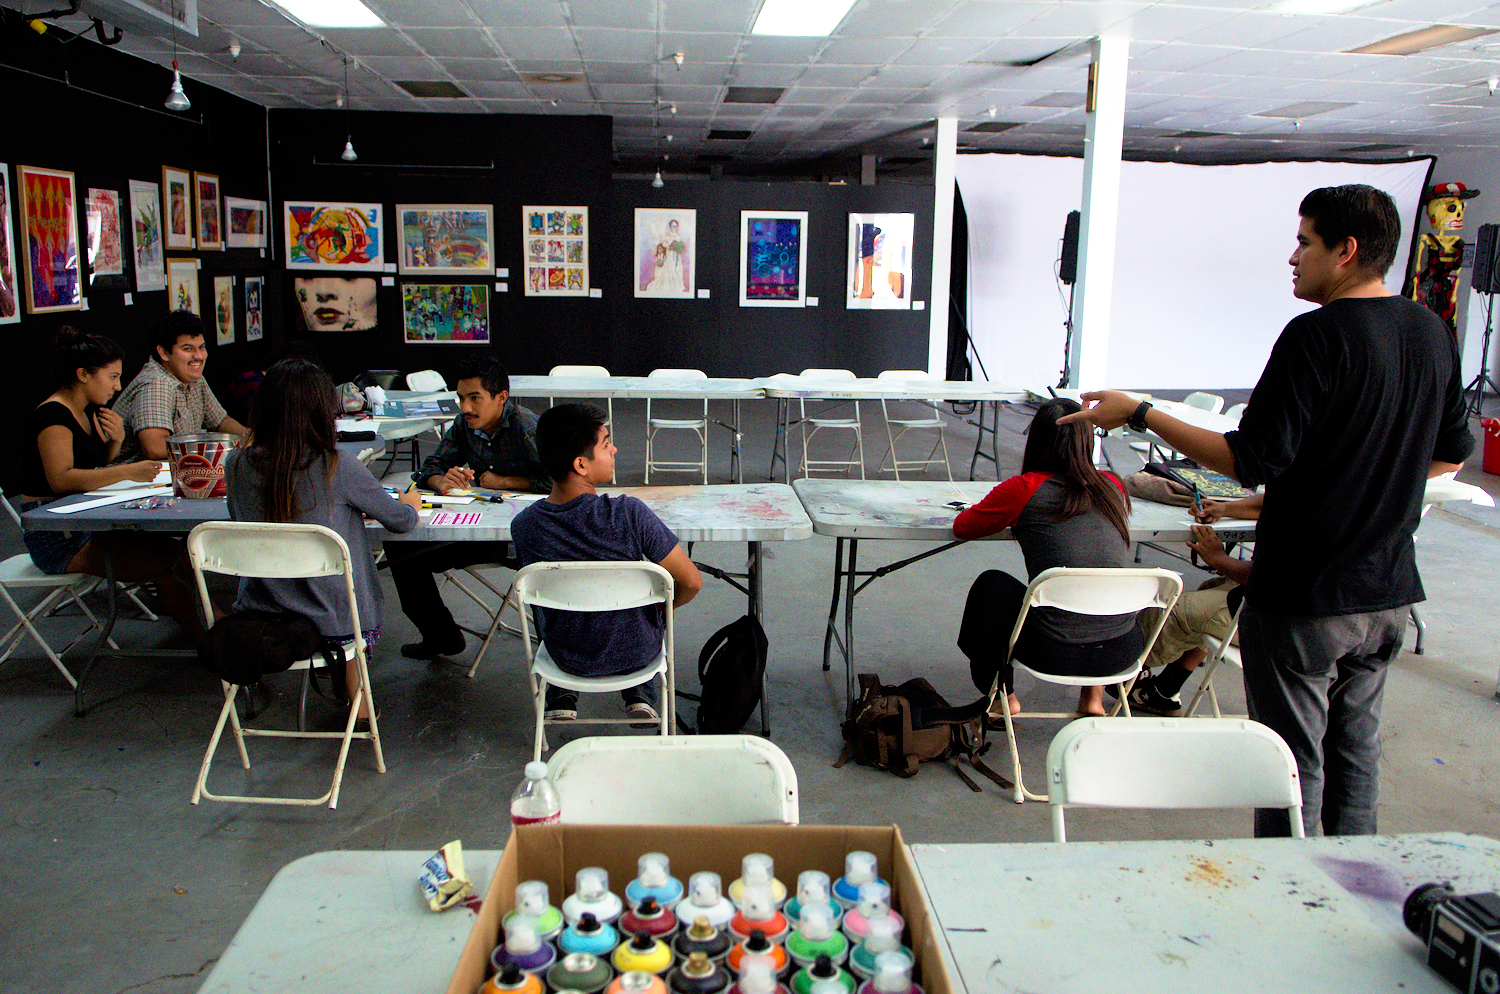 The Self Help Graphics center is also a major and long lasting actor in the printmaking scene. Located downtown, this center actively serves the local Latino community through collective open courses to initiate young and emerging artists.